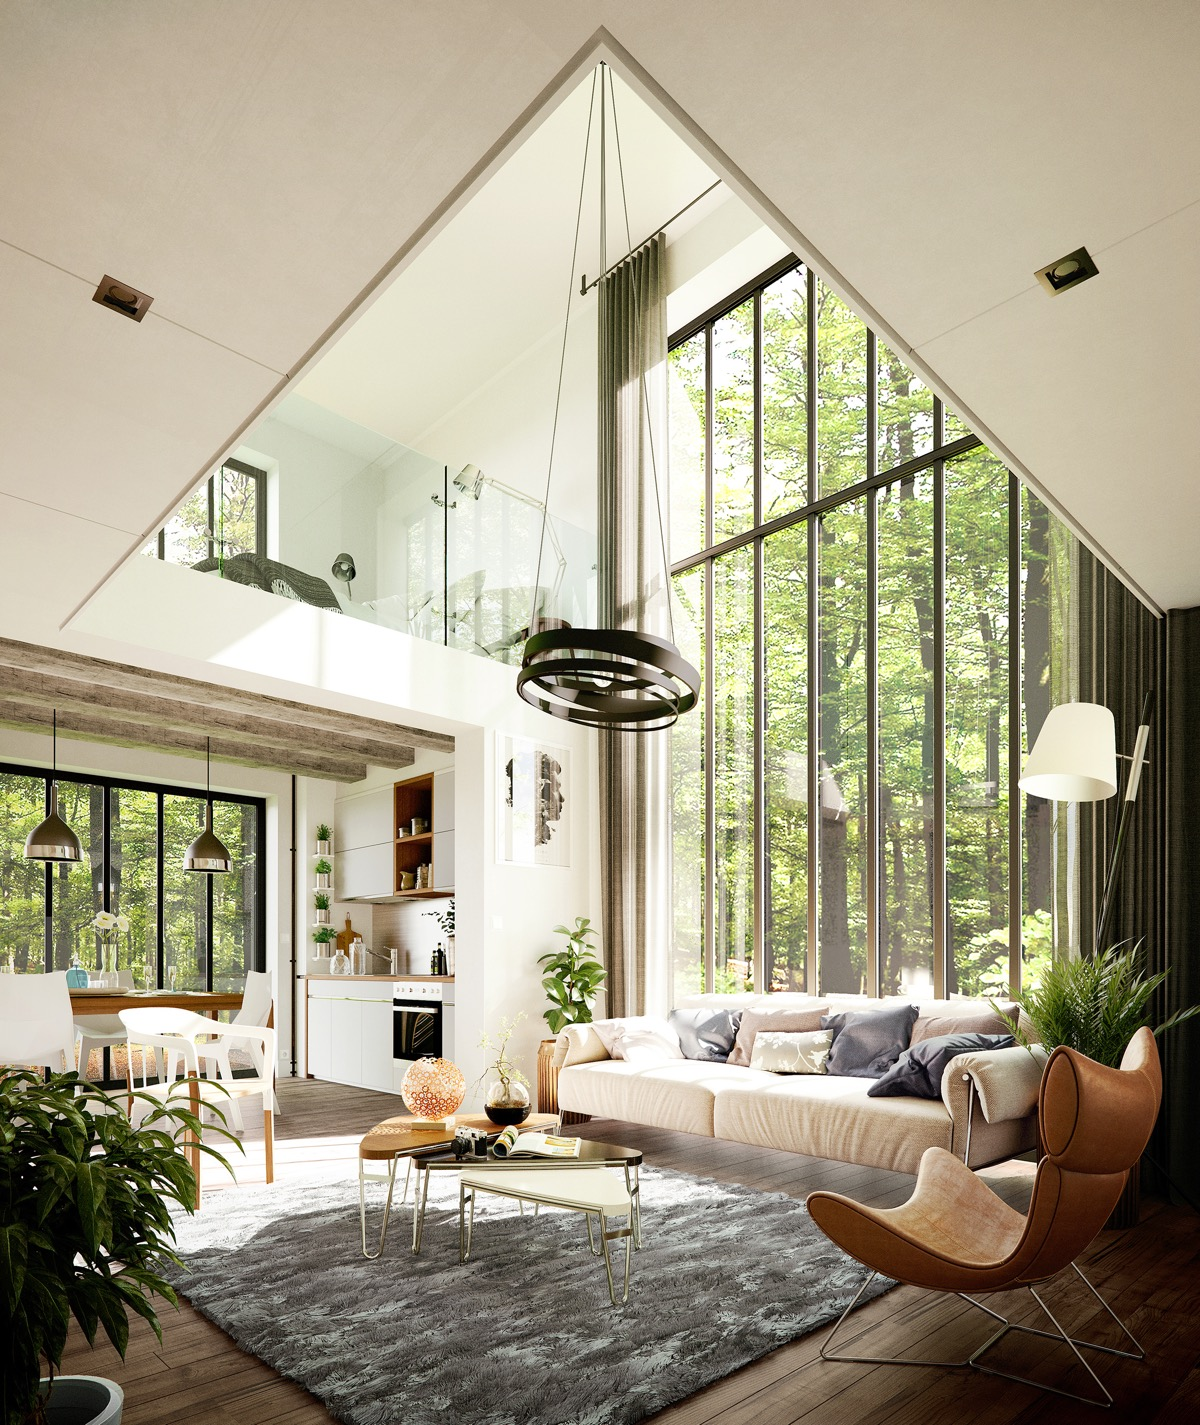 51 Beautiful Living Rooms With Irresistible Modern Appeal on Beautiful Room Pics  id=30380